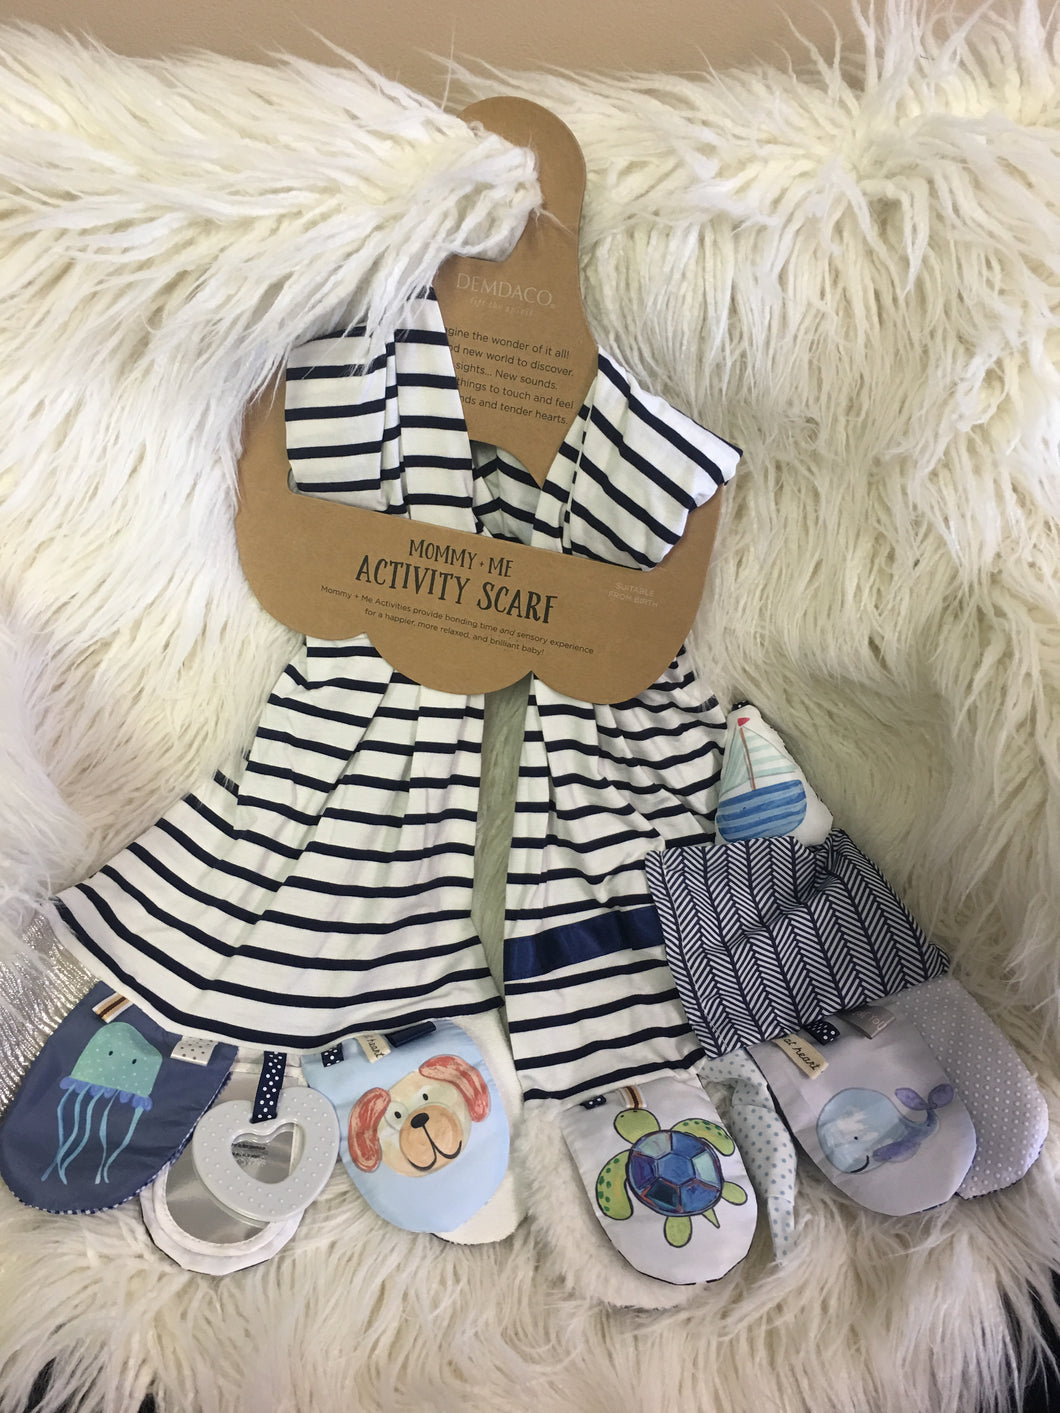 Mommy and Me Activity Scarf (Navy strip)